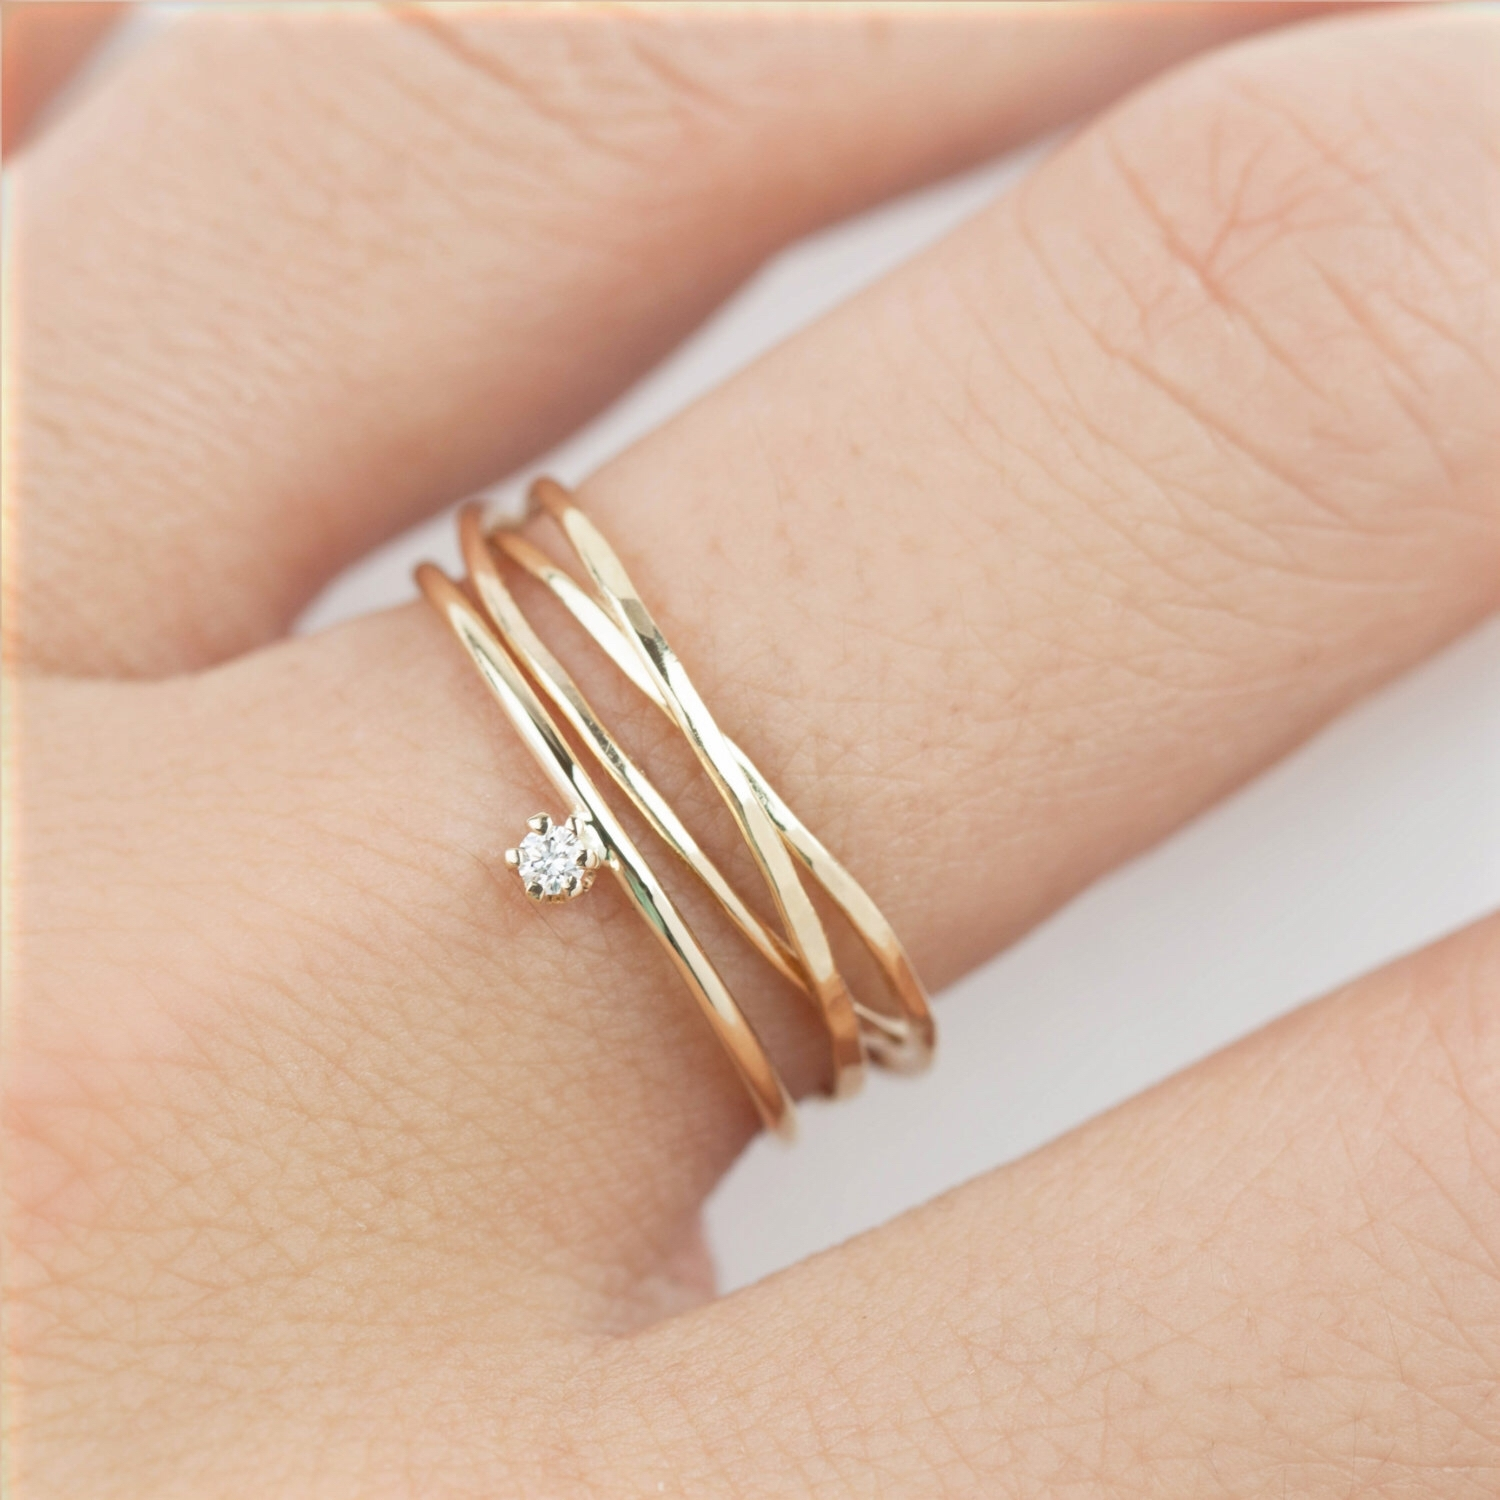 14k Gold Trinity Ring, Dainty Rings, Three Rings, Textured Ring Within 2018 Three Stackable Chevron Diamond Rings (Gallery 3 of 15)